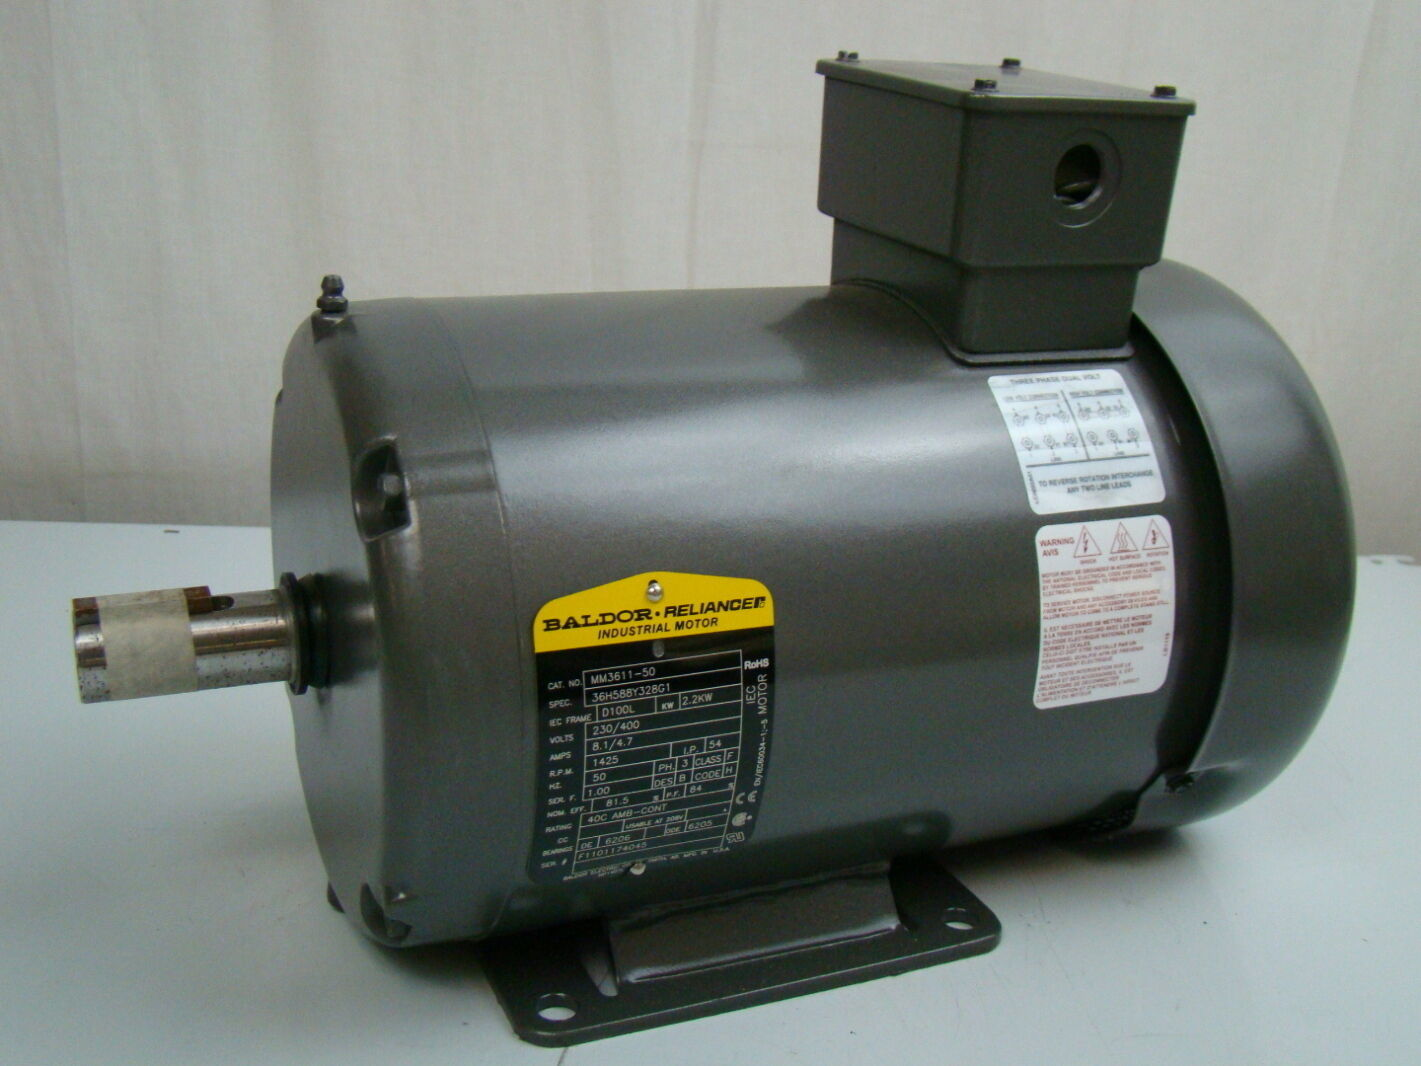 Baldor 2 2 kw 1425 rpm electric motor mm3611 50 ebay for 2 rpm electric motor